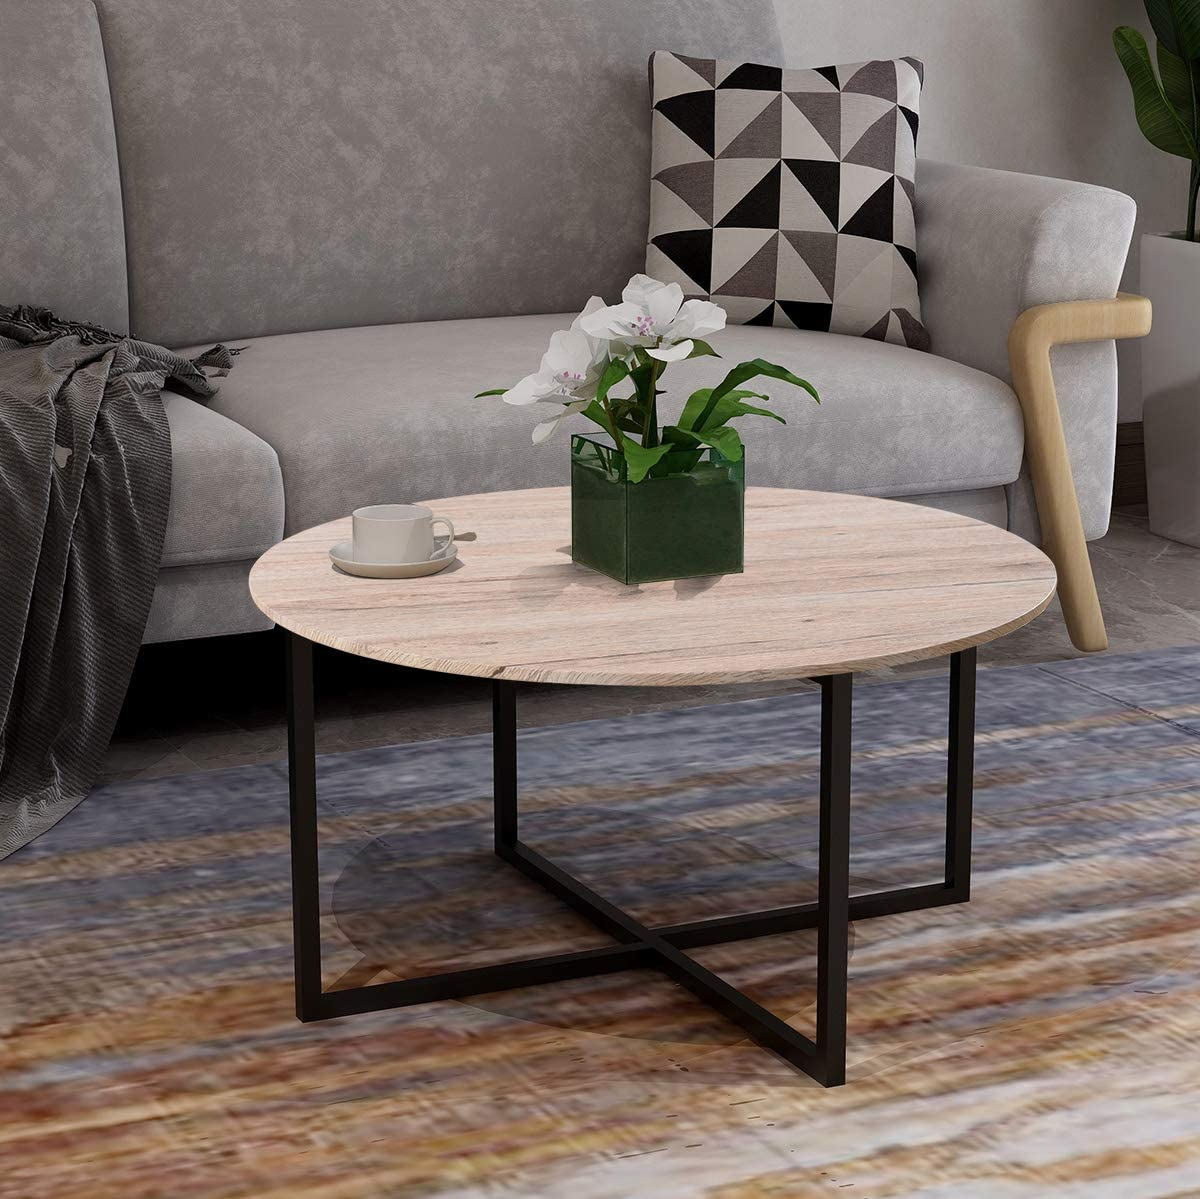 Round Coffee Table Kitchen Dining Table Modern Leisure Tea Table Office Conference Pedestal Desk Computer Study Desk